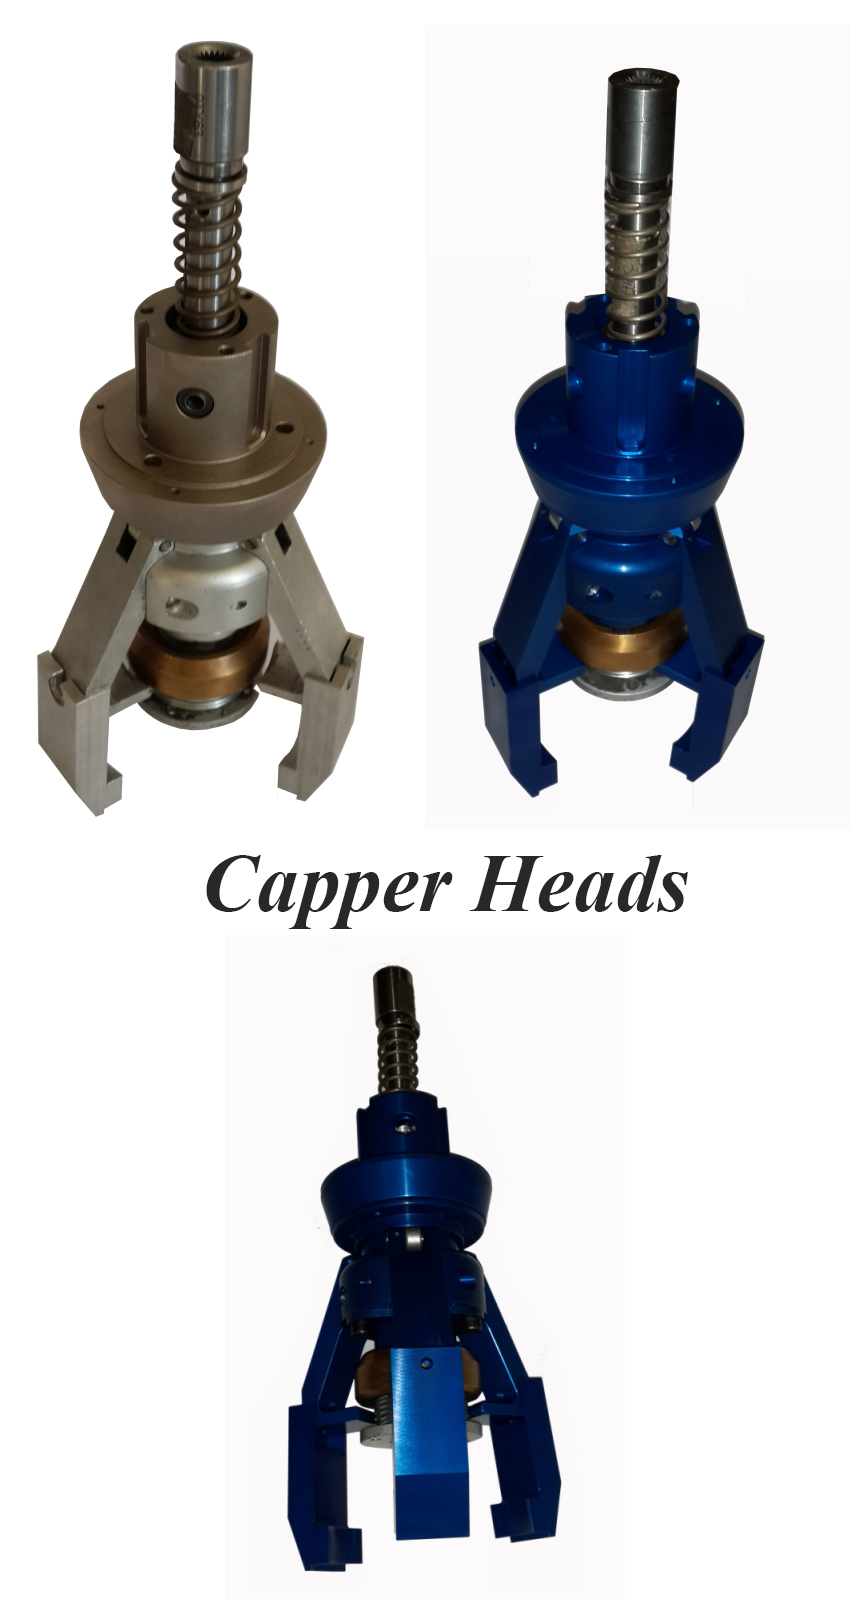 Trigger Capper Capping Machine Heads, Trigger Spray Inserter, Rotary Trigger Capper Heads